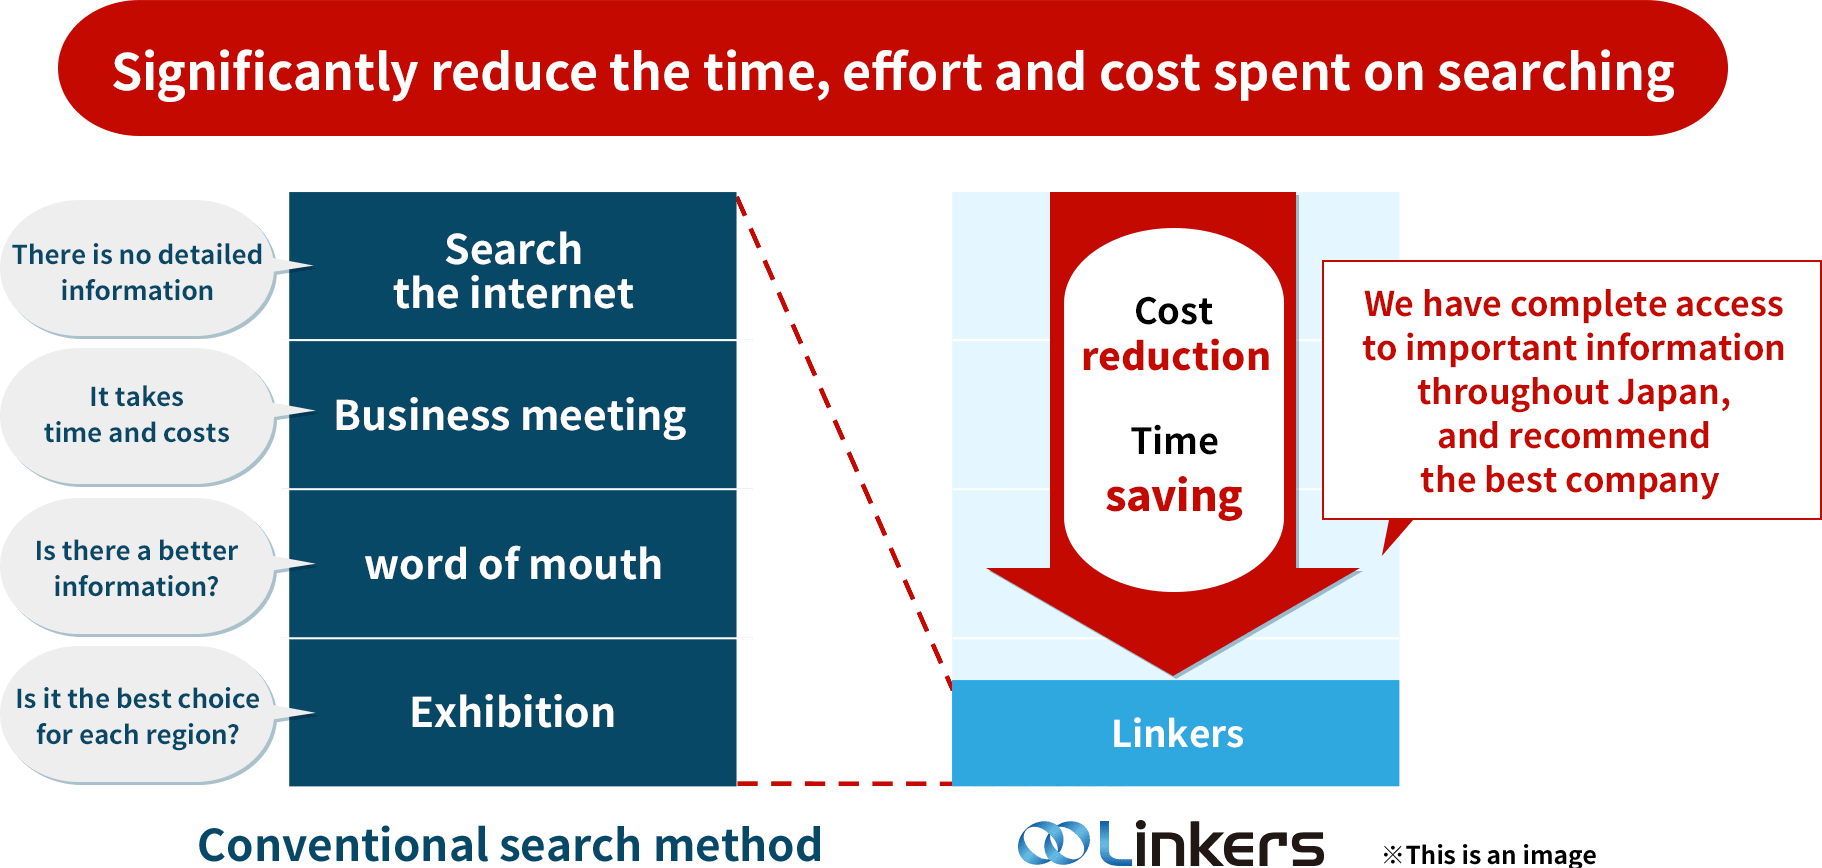 Significantly reduce the time, effort and cost spent on searching